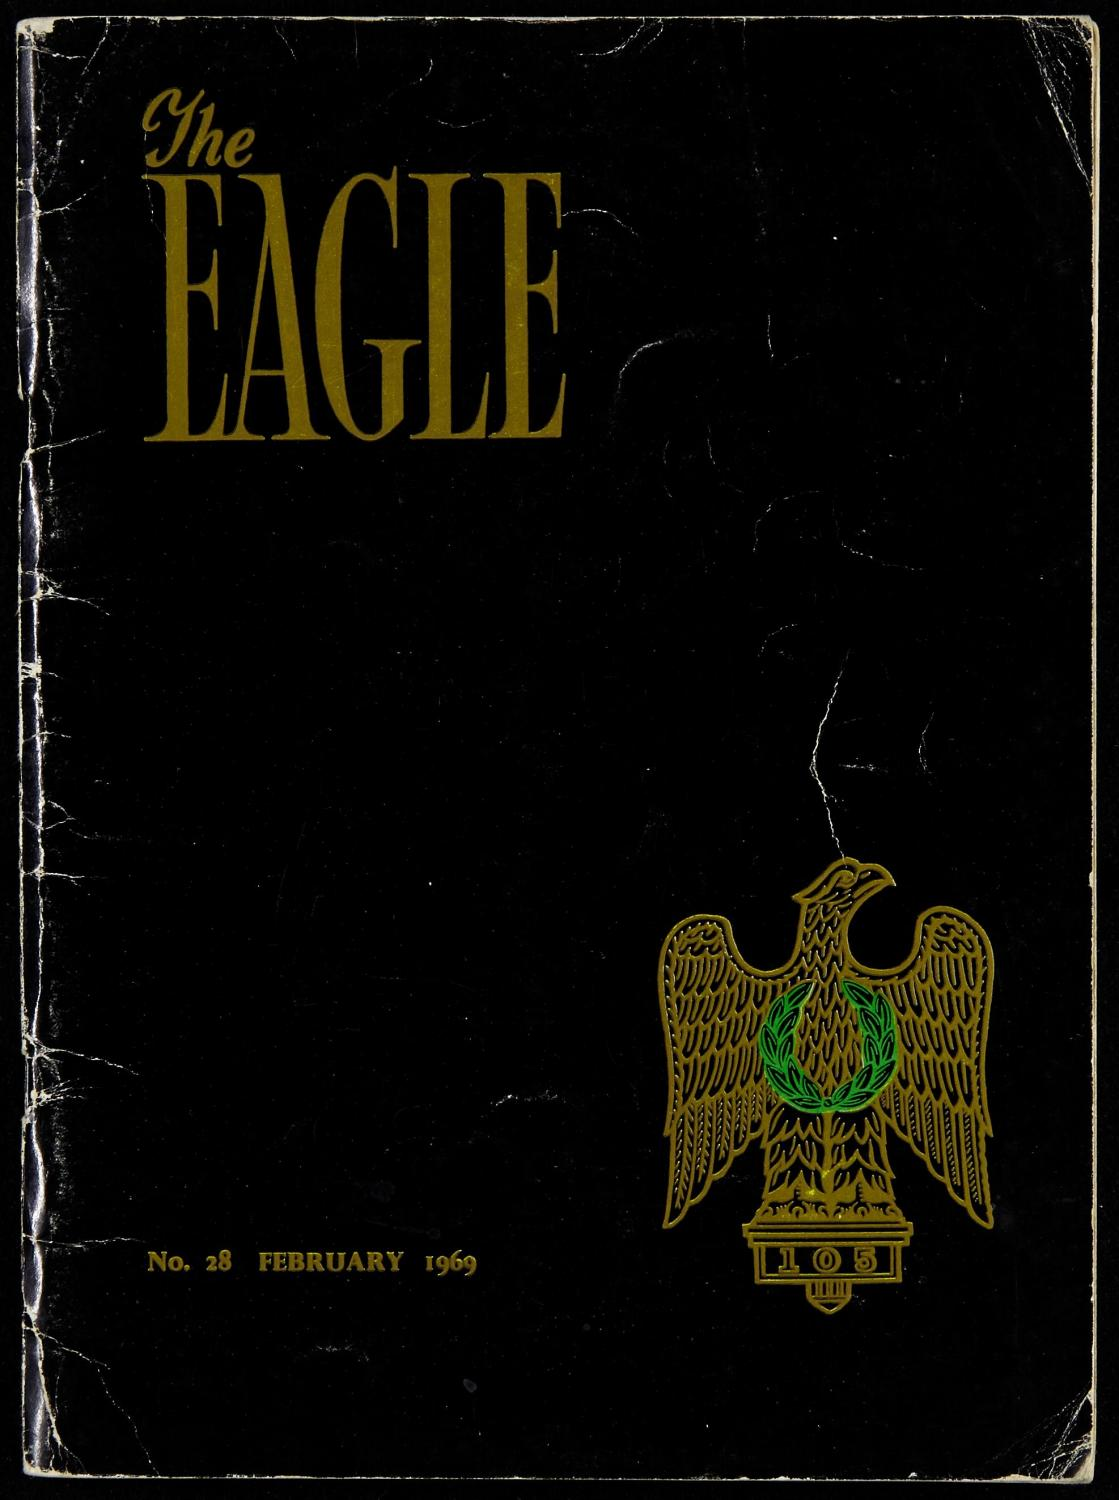 The eagle royal dragoons magazines the eagle 1969 by RHG/D